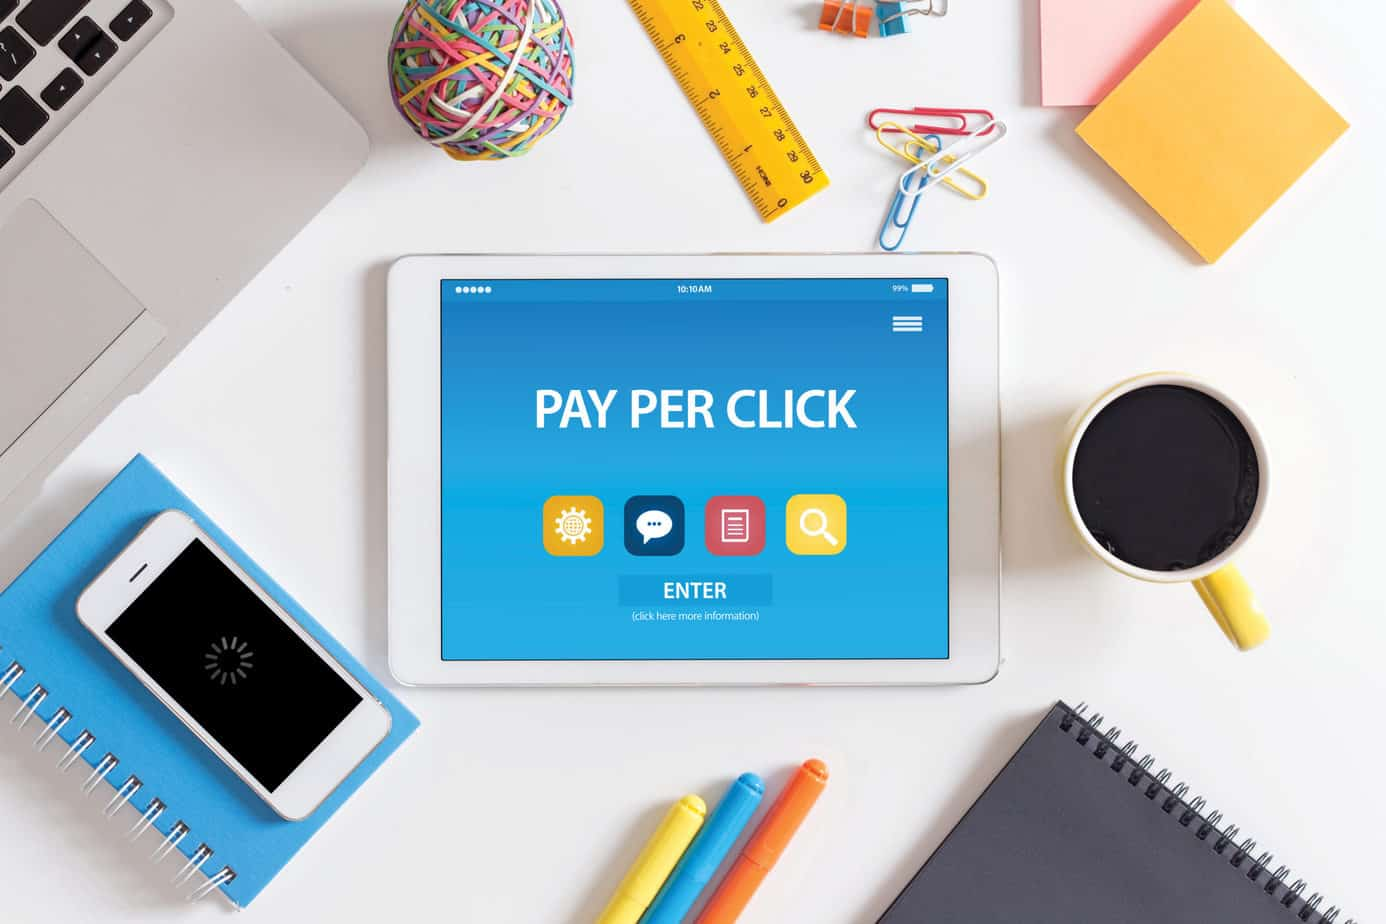 PAY PER CLICK CONCEPT ON TABLET PC SCREEN